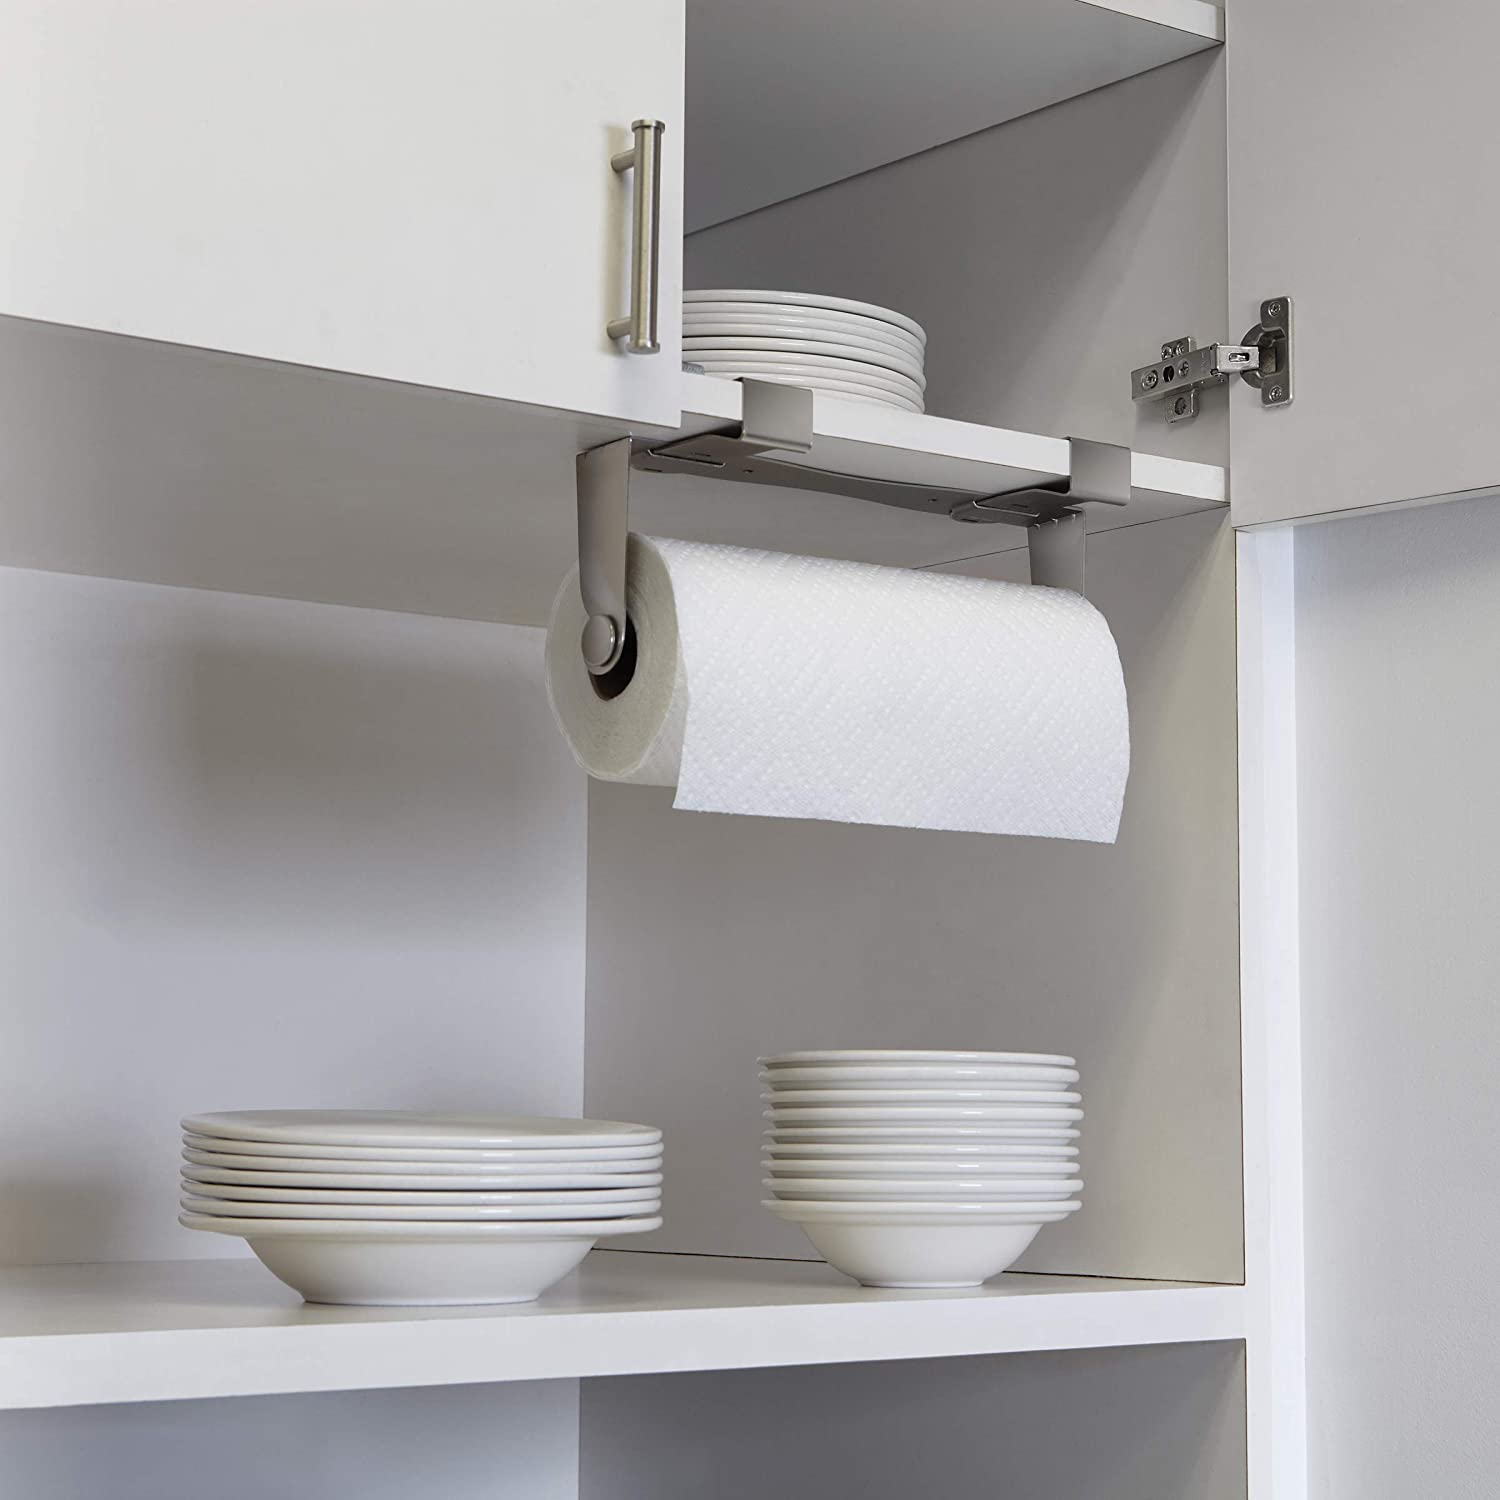 Umbra Mountie Cabinet-Mount Paper Towel Holder – Modern, Versatile Nickel Plated Kitchen Paper Towel - Offers Three Easy Mounting Options - Allows One Handed Tear - Prevents Rolls From Unraveling